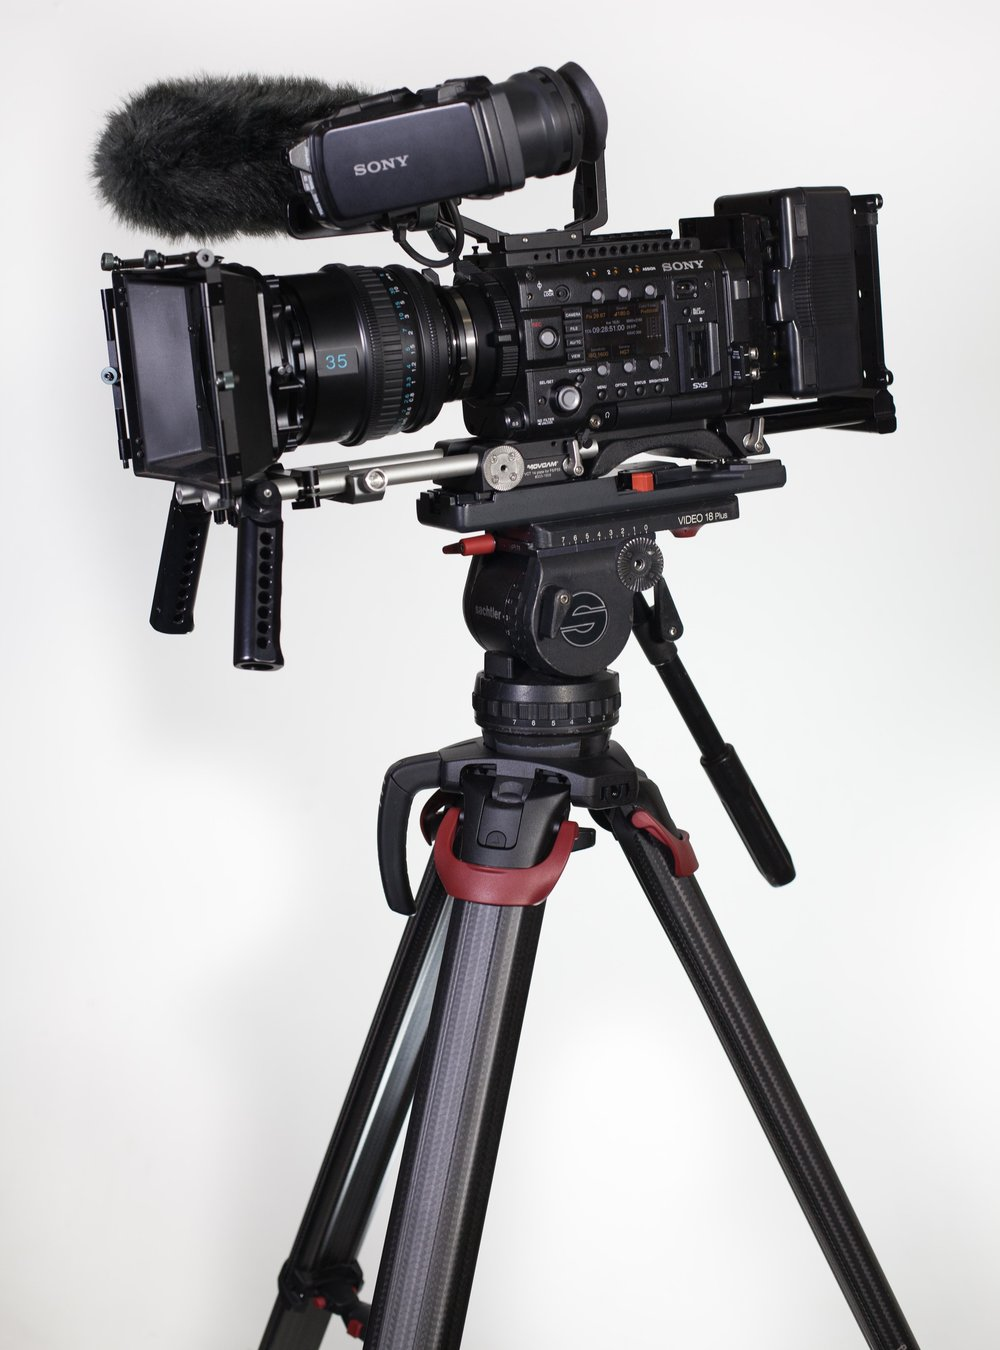 Sony F5 and the Flowtech 100 - The Flowtech 100 is Sachtler's latest tripod system, that combines light weight carbon fiber design and improved functionalityMore info on the Flowtech 100!